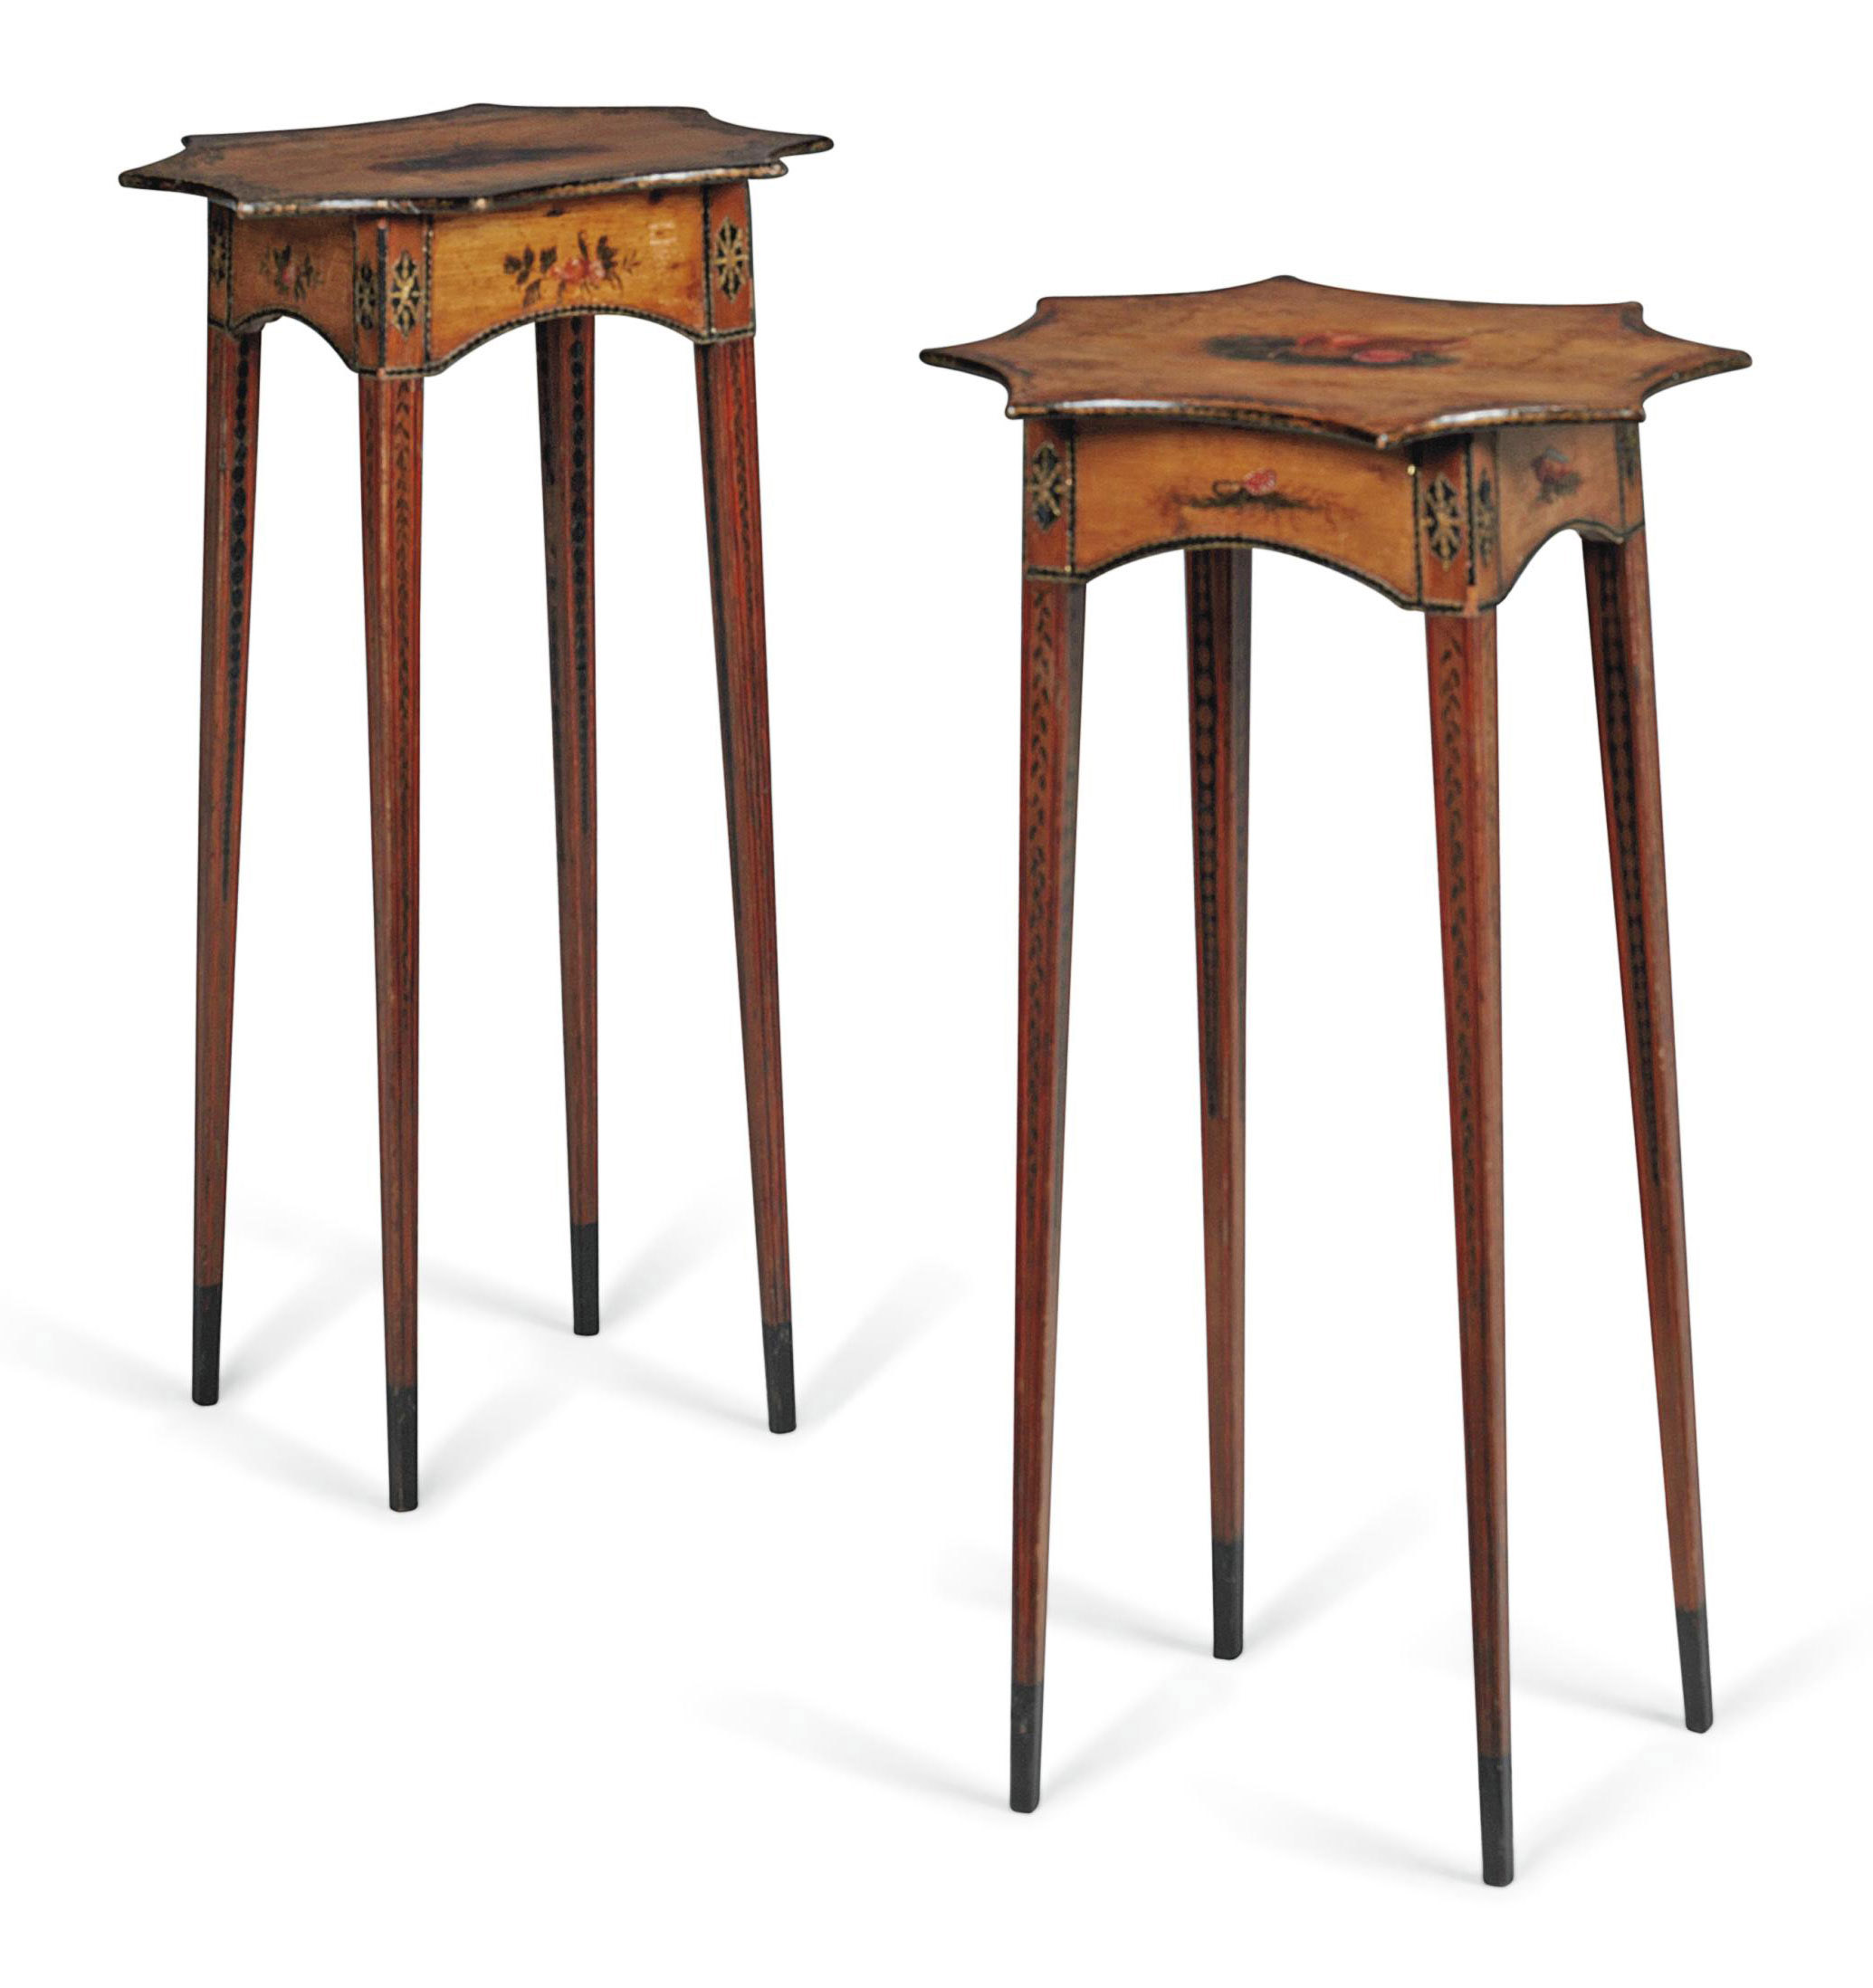 A PAIR OF GEORGE III POLYCHROME DECORATED PINE OCCASIONAL TABLES